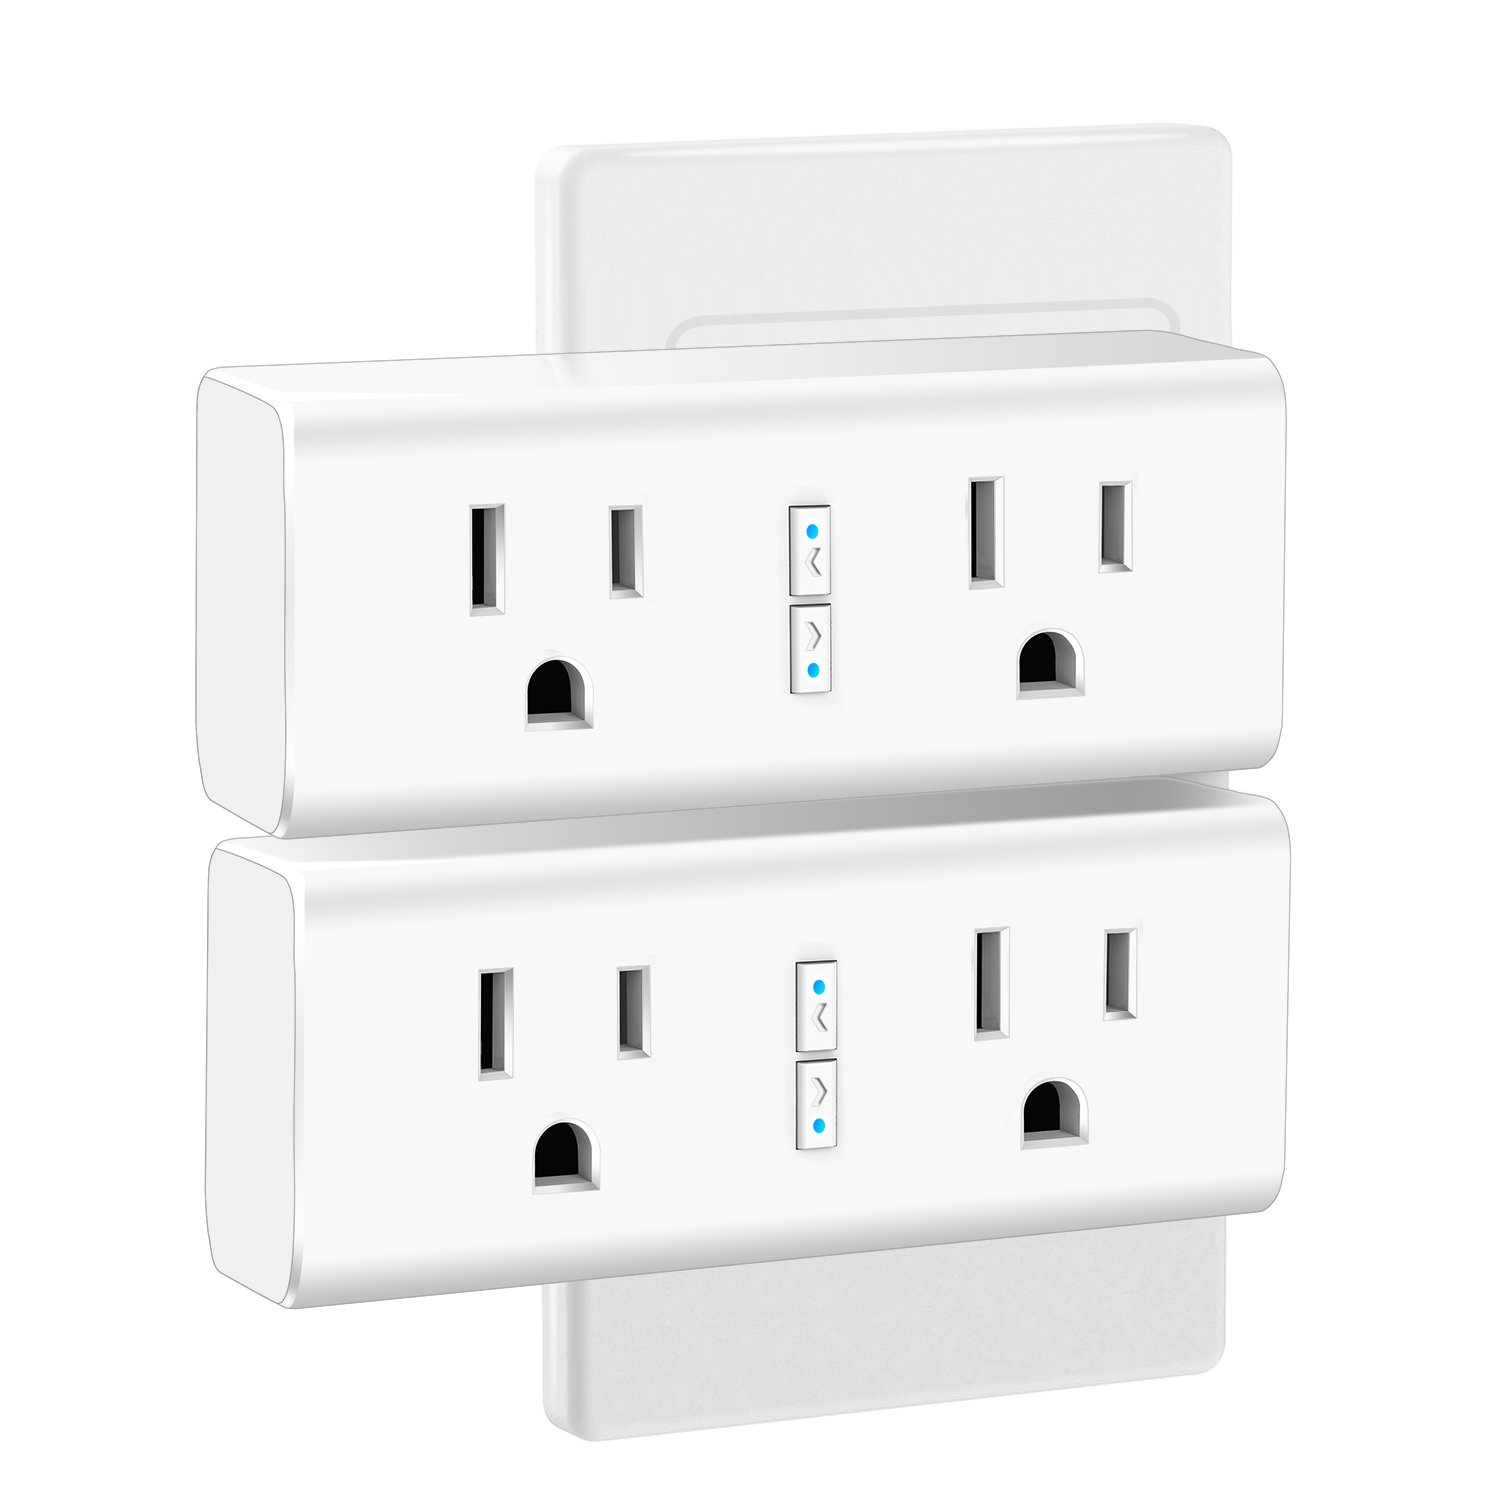 Anbes Wi-Fi Smart Plug Mini Outlet with Energy Monitoring, Alexa Plug Smart Socket Compatible with Alexa and Google Home, Timing Function, Dual Outlets Work Individually or in Groups (2 Pack) by Anbes WP6 (Image #1)